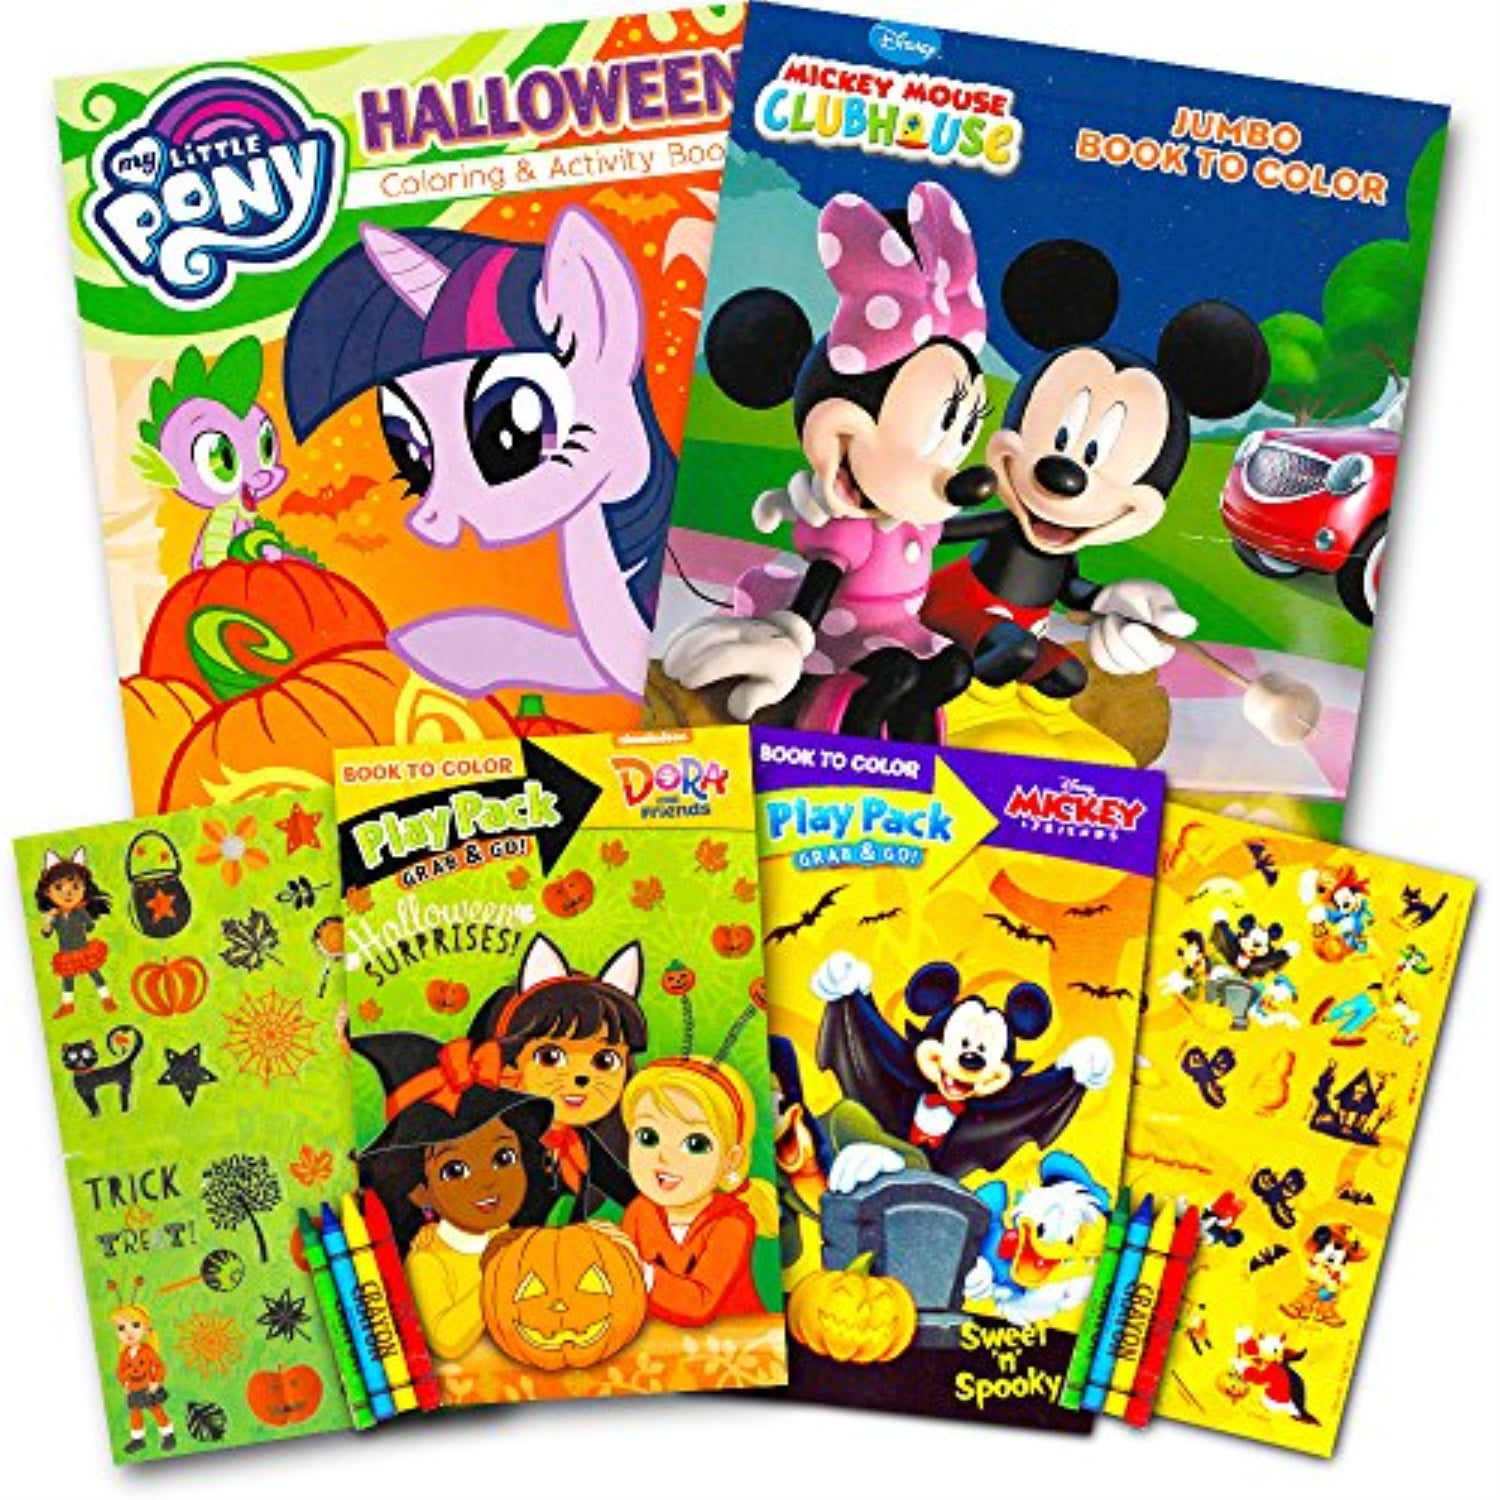 - Disney Halloween Coloring Book Super Set For Kids Toddlers -- 3 Books  Featuring Minnie Mouse, Mickey Mouse, My Little Pony And M - Walmart.com -  Walmart.com